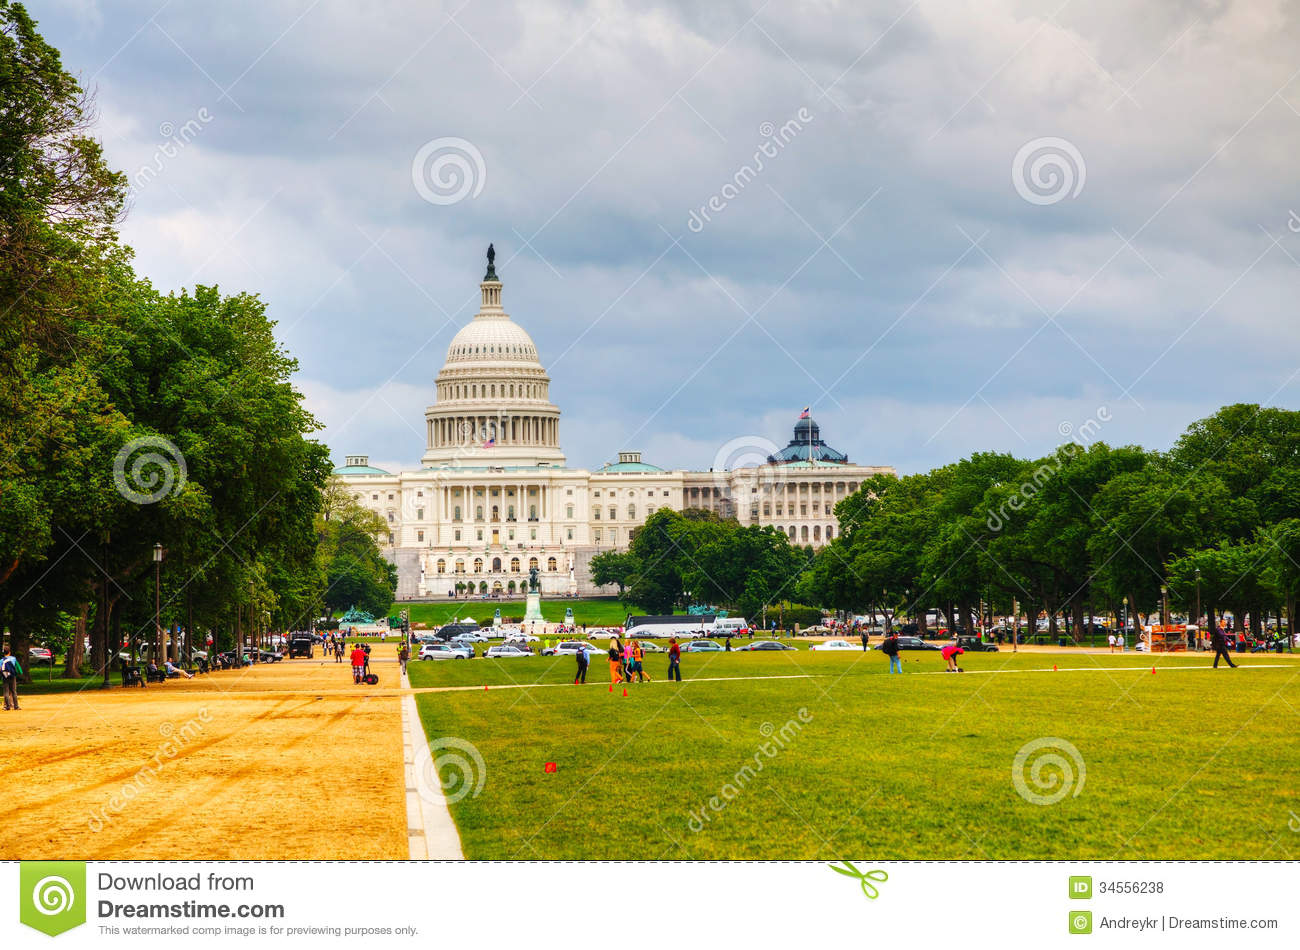 Map Of Washington Dc Metro Area Map Free Download Images World - Washington dc map download